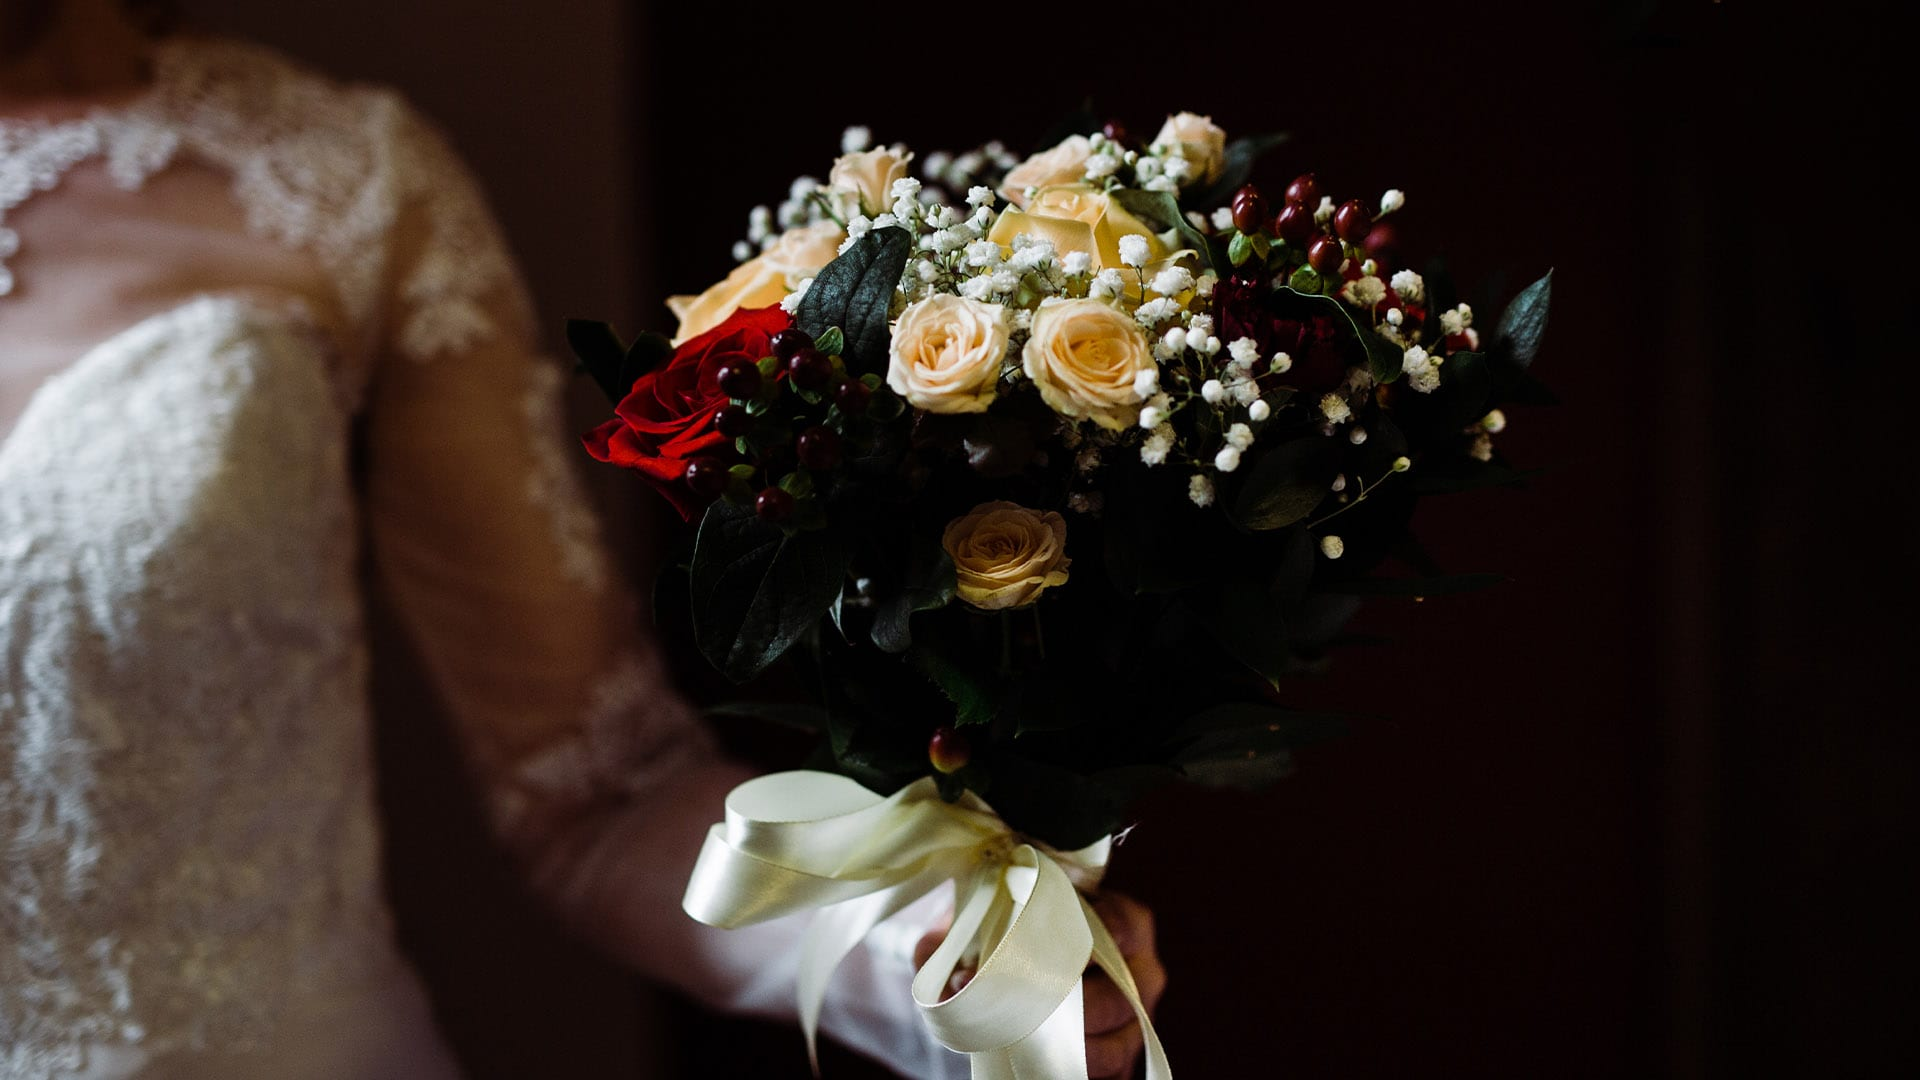 Wedding Photographer Chelmsford - Bouquet